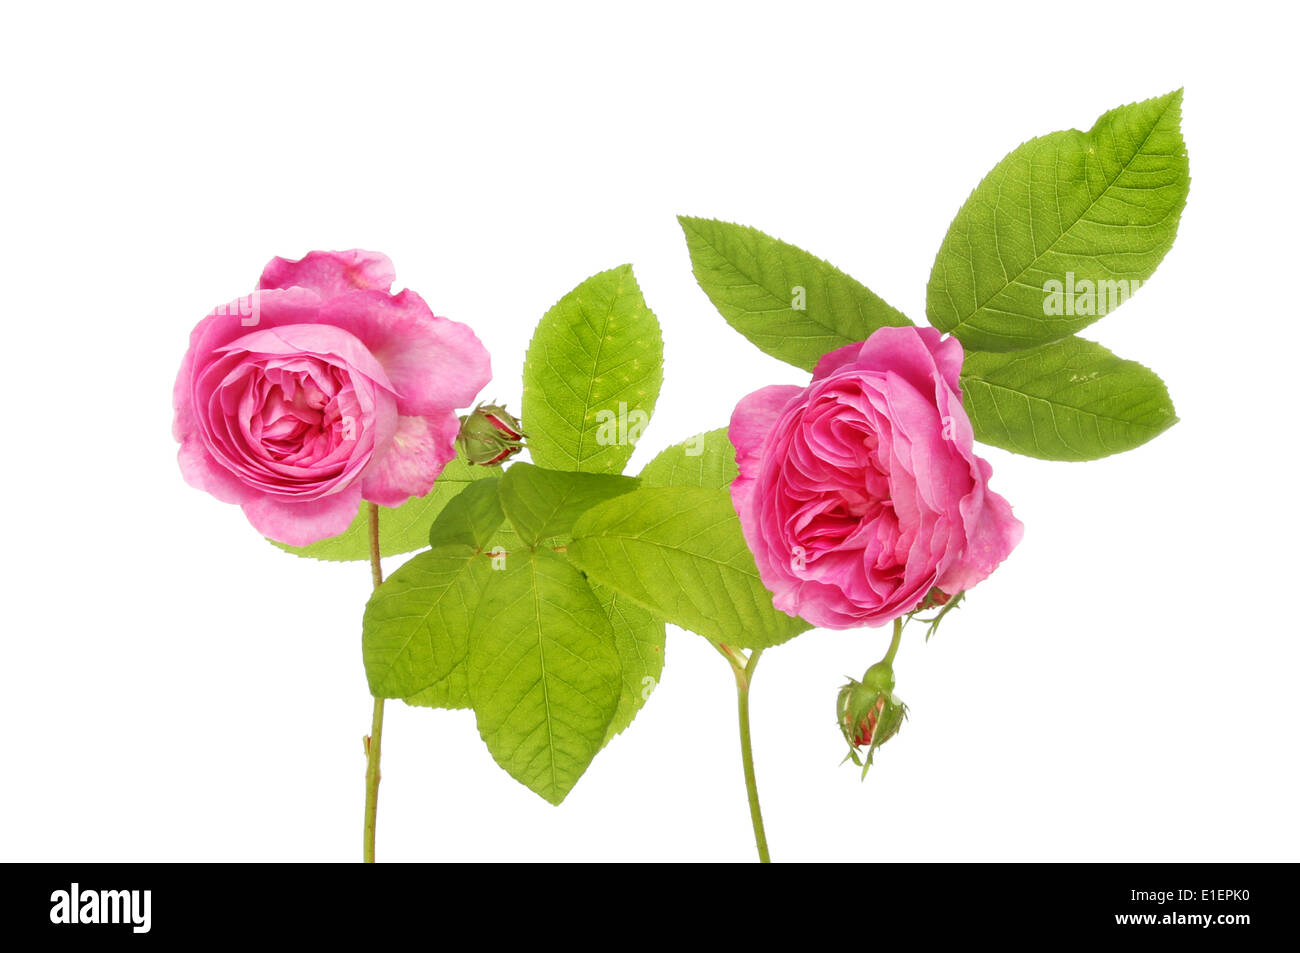 Two magenta rose flowers and foliage isolated against white Stock Photo